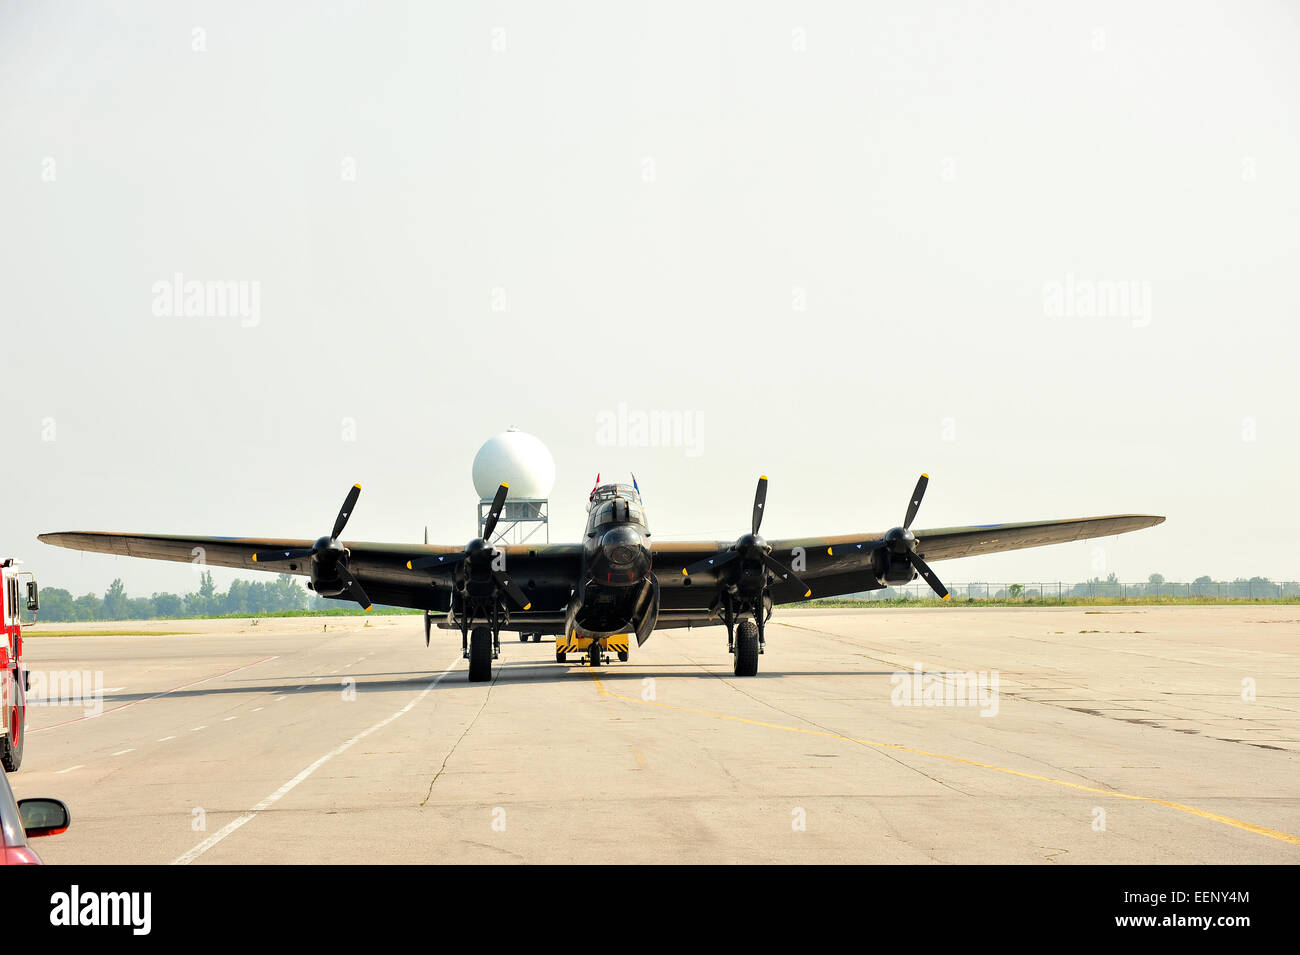 An Avro Lancaster Being Towed To The End Of A Runway Prior To Stock Photo Alamy